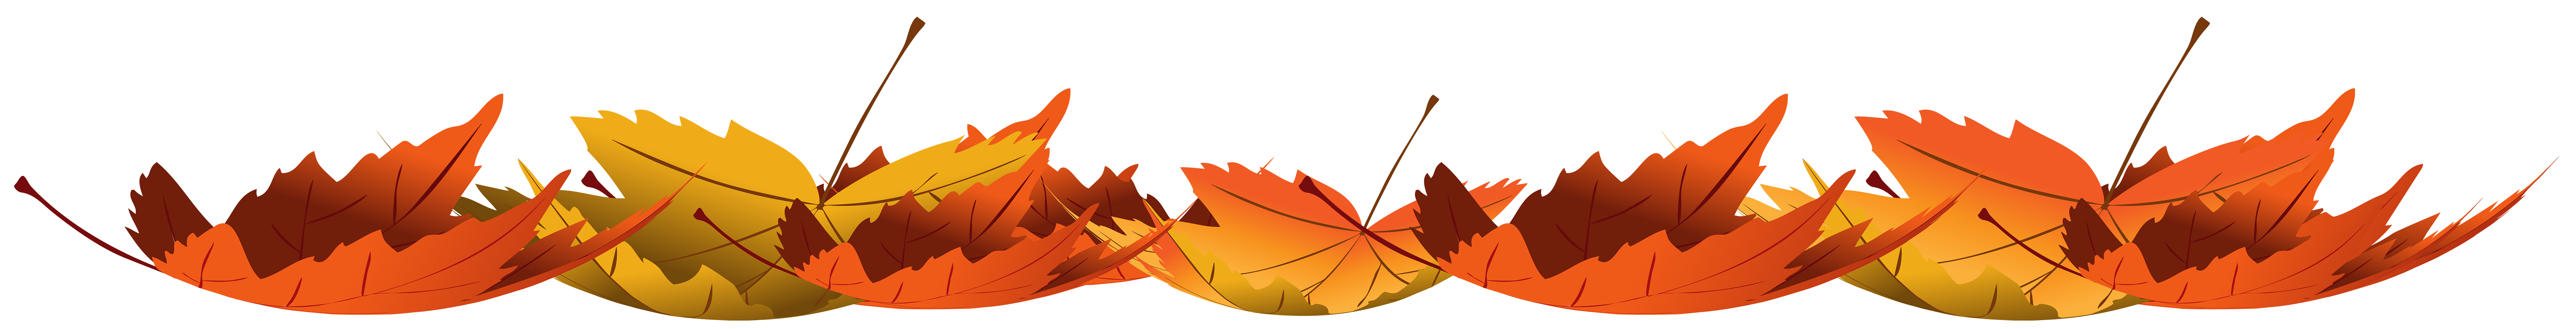 Fallen leaves png. Autumn transparent image gallery